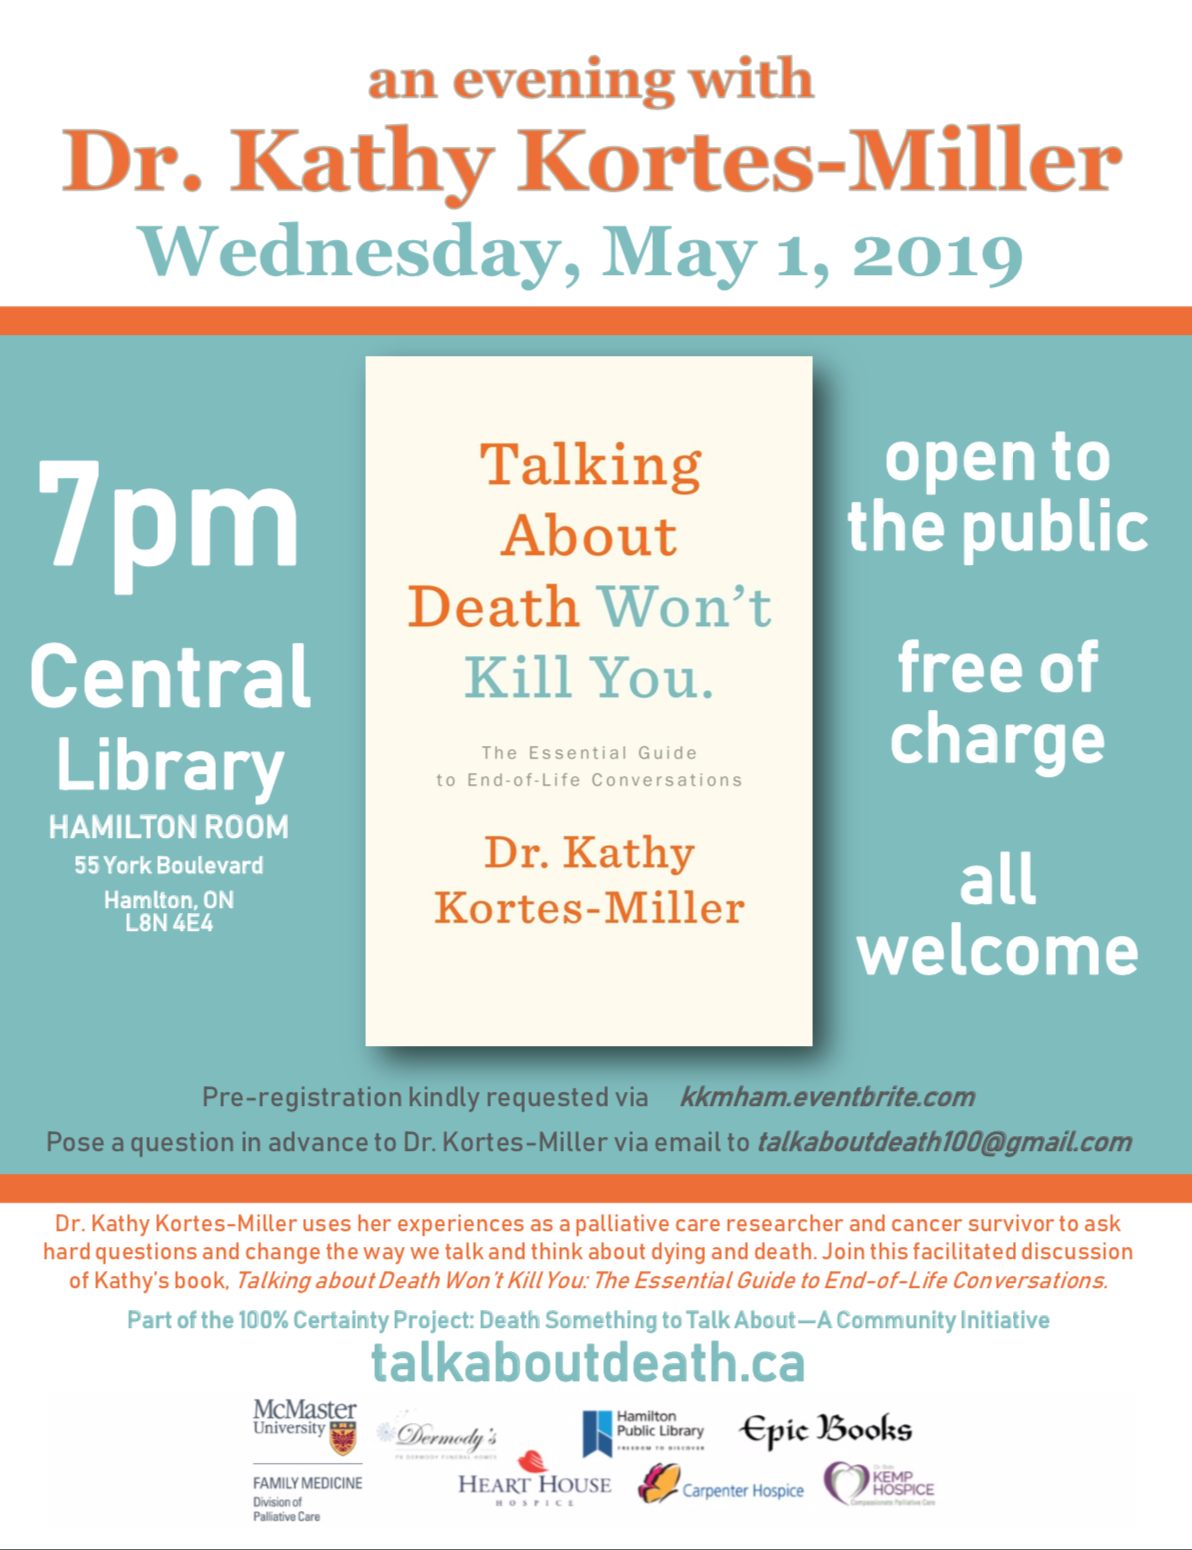 "Please join us for this FREE public event. As part of the Division of Palliative Care with  McMaster Faculty of Health Sciences , and our ""The 100% Certainty Project. Death: Something to Talk About"", am honoured to co-host and moderate this event at the  Hamilton Public Library  with my brilliant friend and colleague Dr. Kathy Kortes-Miller. While the event is free, registration is required via  Eventbrite"